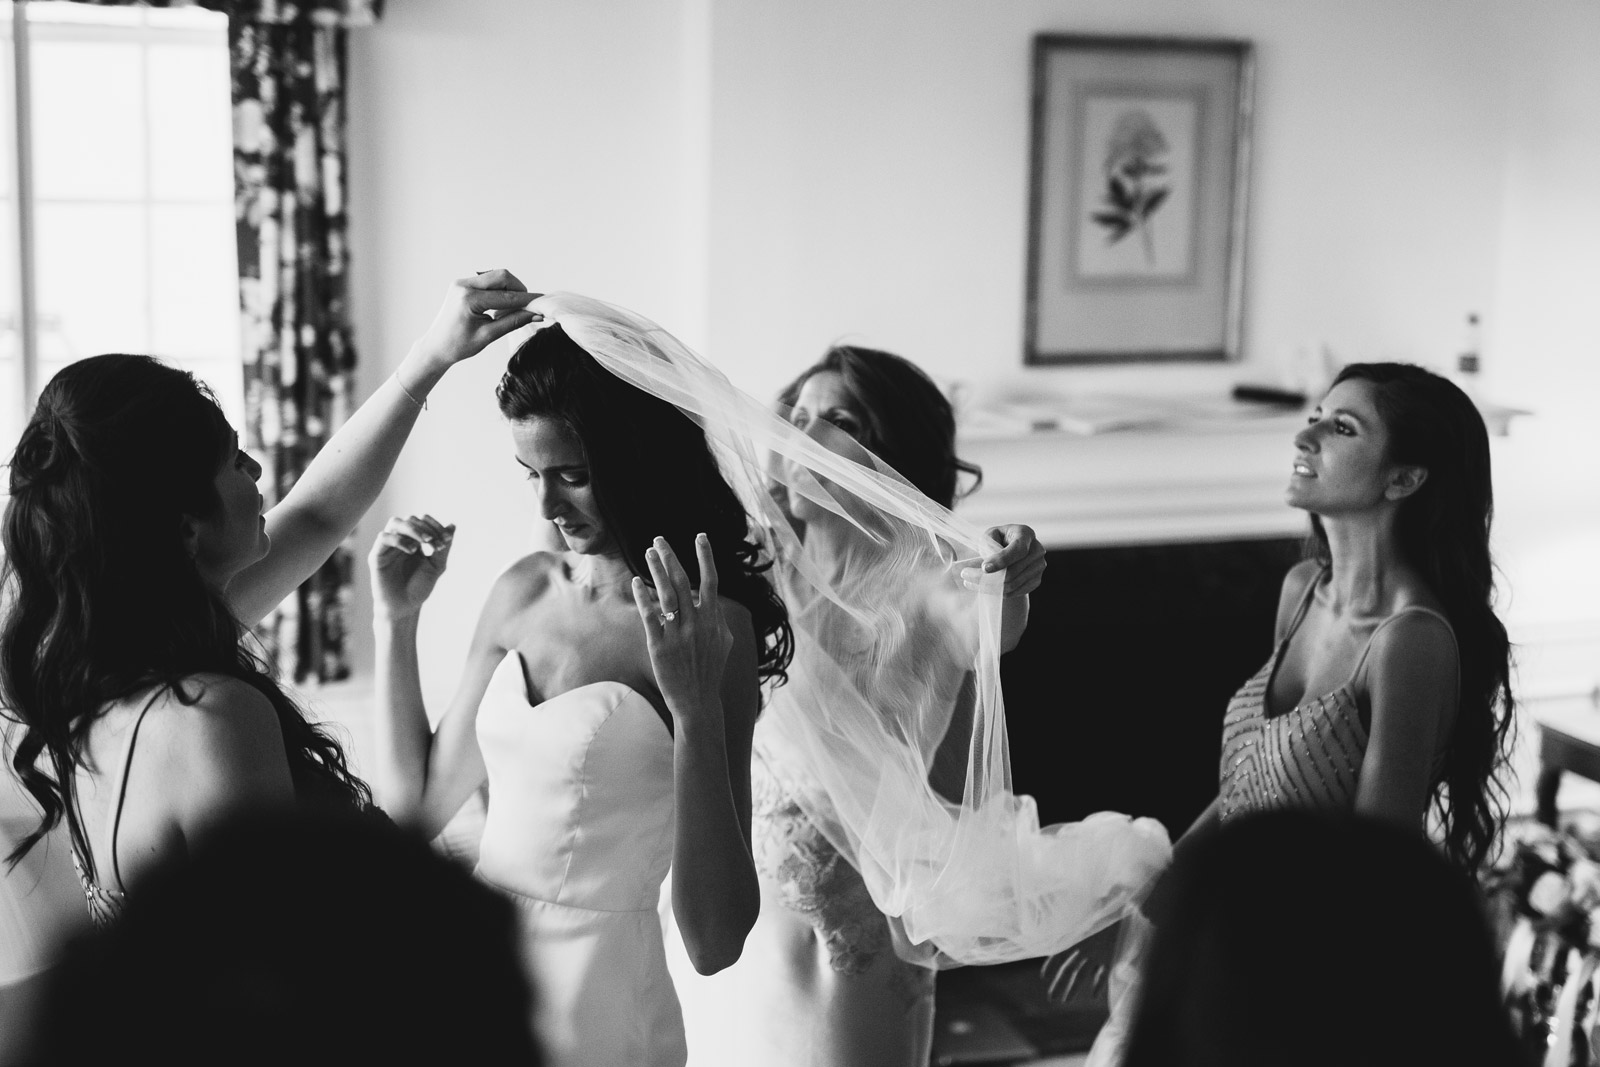 photos of mother of the bride fixing her daughters vail during the wedding day. Pictures captured by Mark Trela Photography